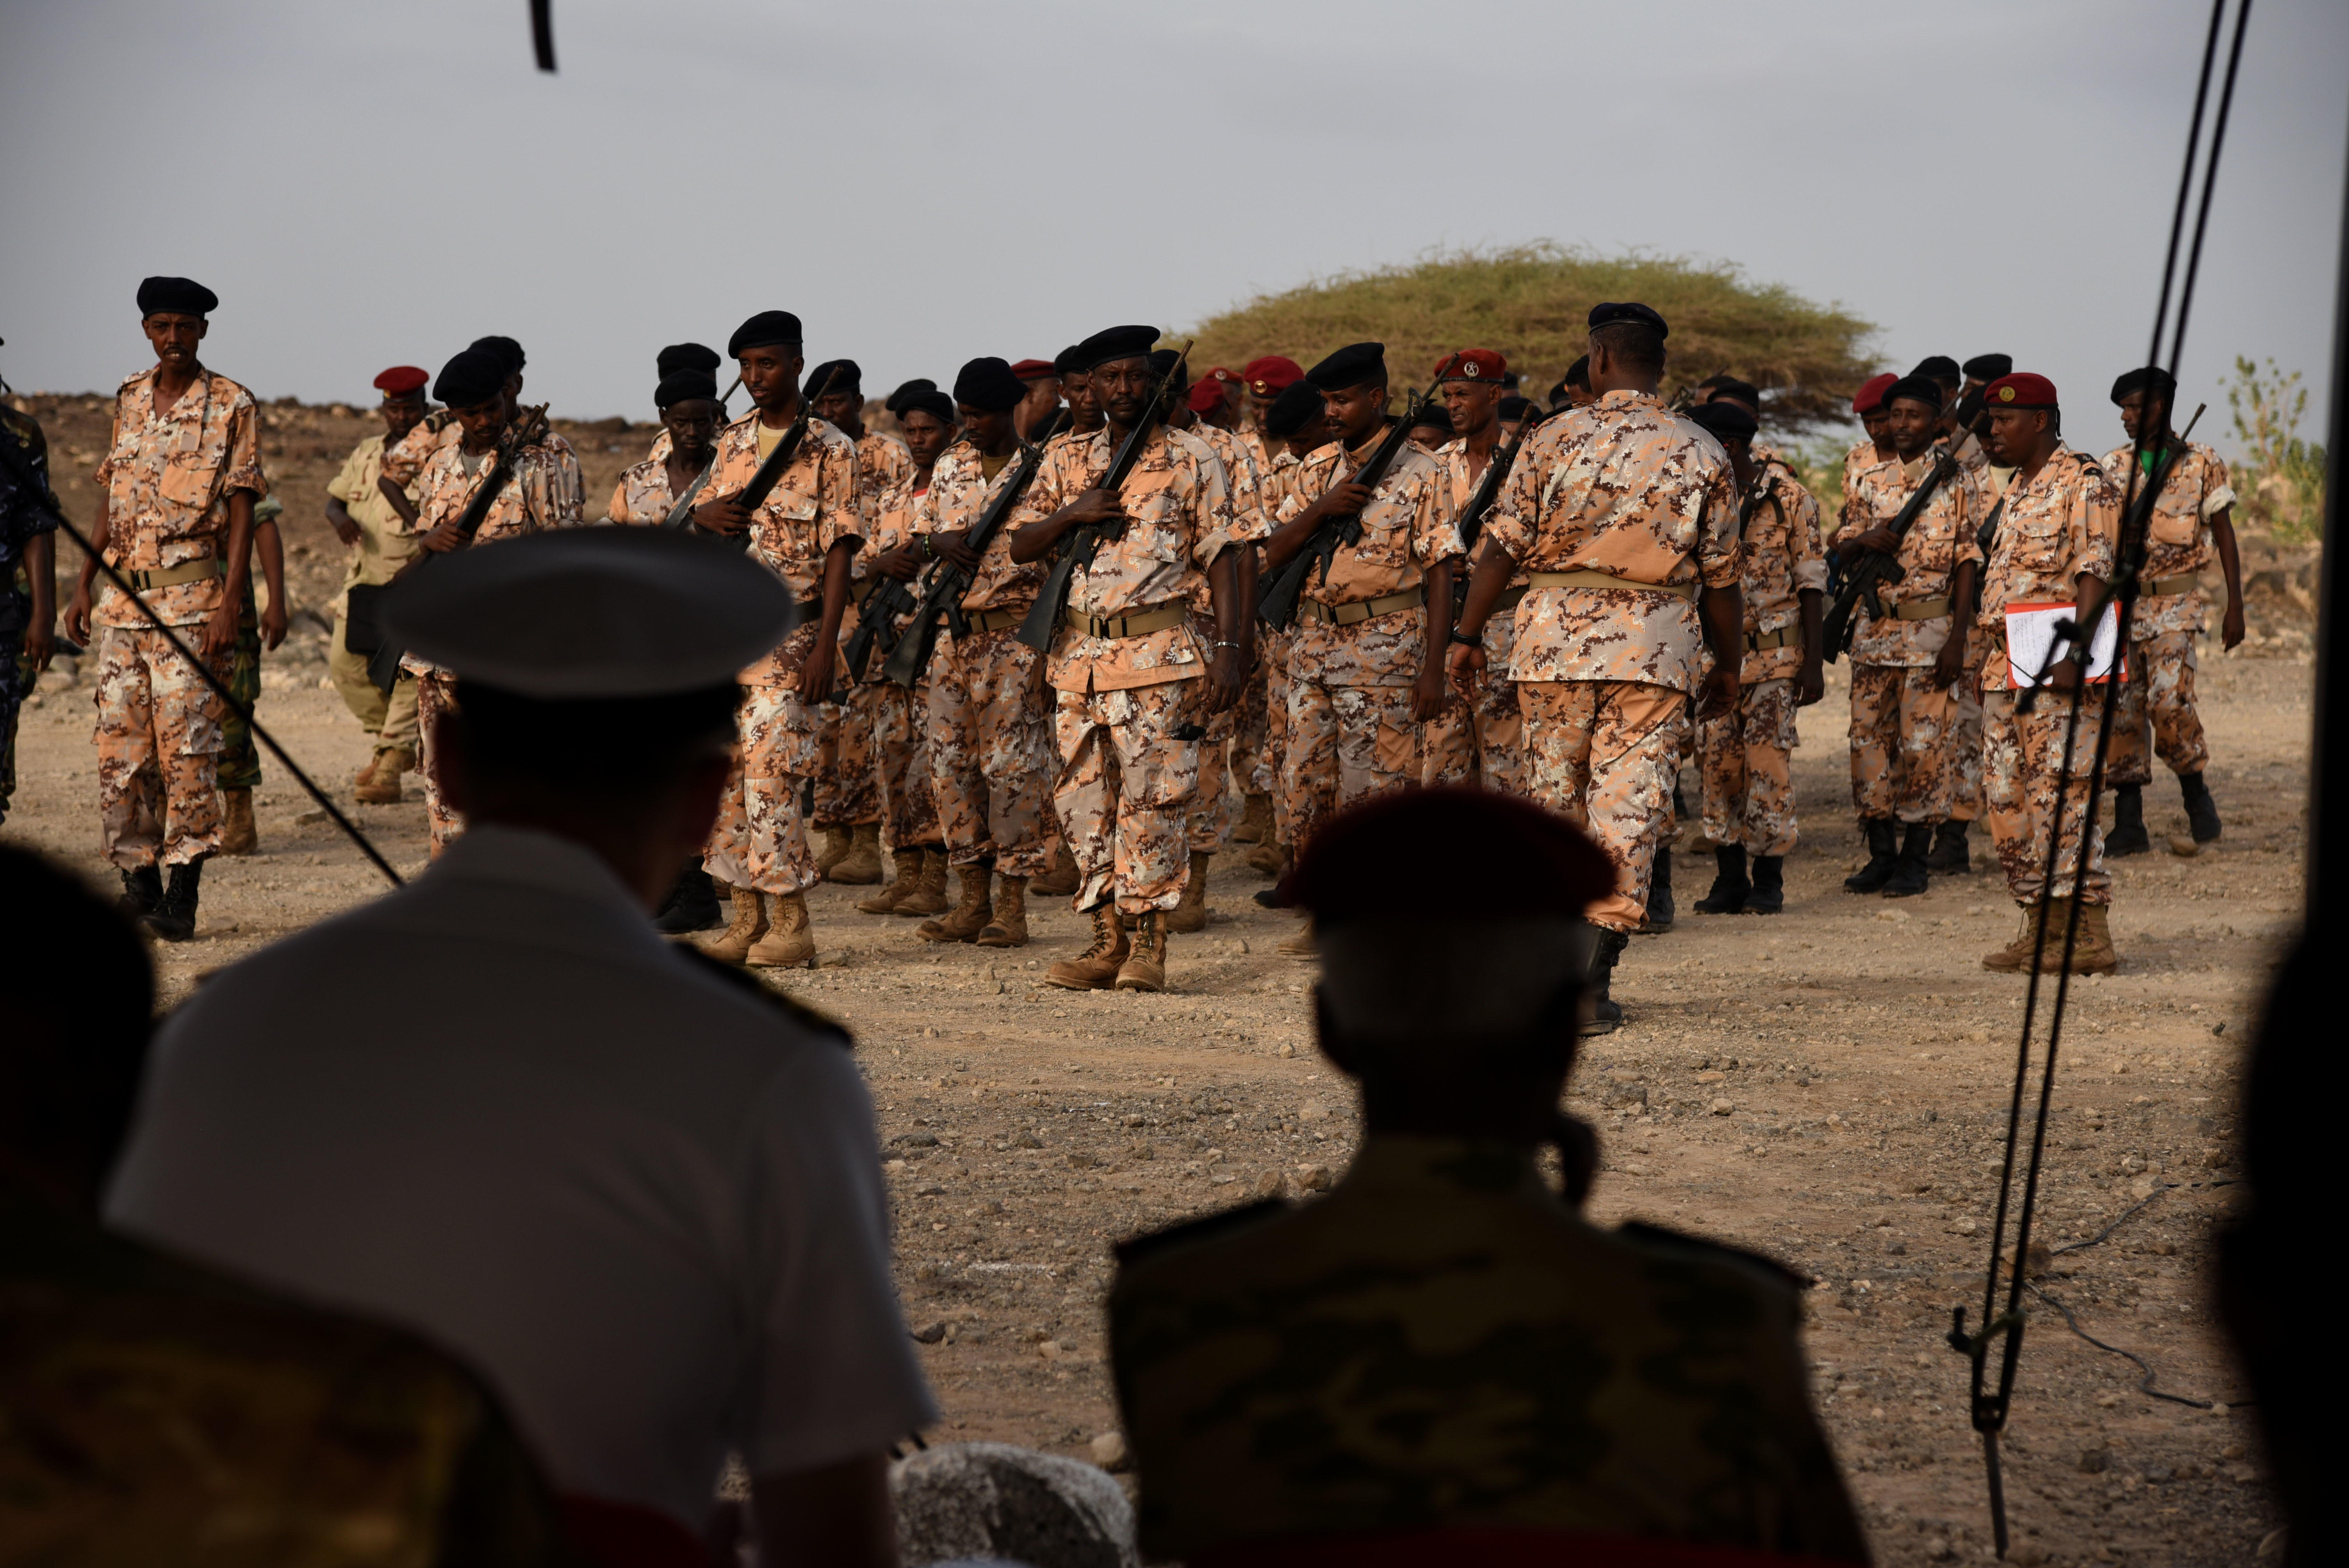 CAMP CHEIK OSMAN, Djibouti – Djiboutian Armed Forces (FAD) Soldiers graduate after completing a five month Area Logistics Training instructed by U.S. Army Regionally Aligned Forces Soldiers, May 19, 2016, at Camp Cheik Osman, Djibouti. The FAD Soldiers learned basic logistics functions, supply, economy, warehouse operations, maintenance along with rifle marksmanship, convoy operations and heavy weapons. (U.S. Air Force photo by Staff Sgt. Tiffany DeNault/Released)